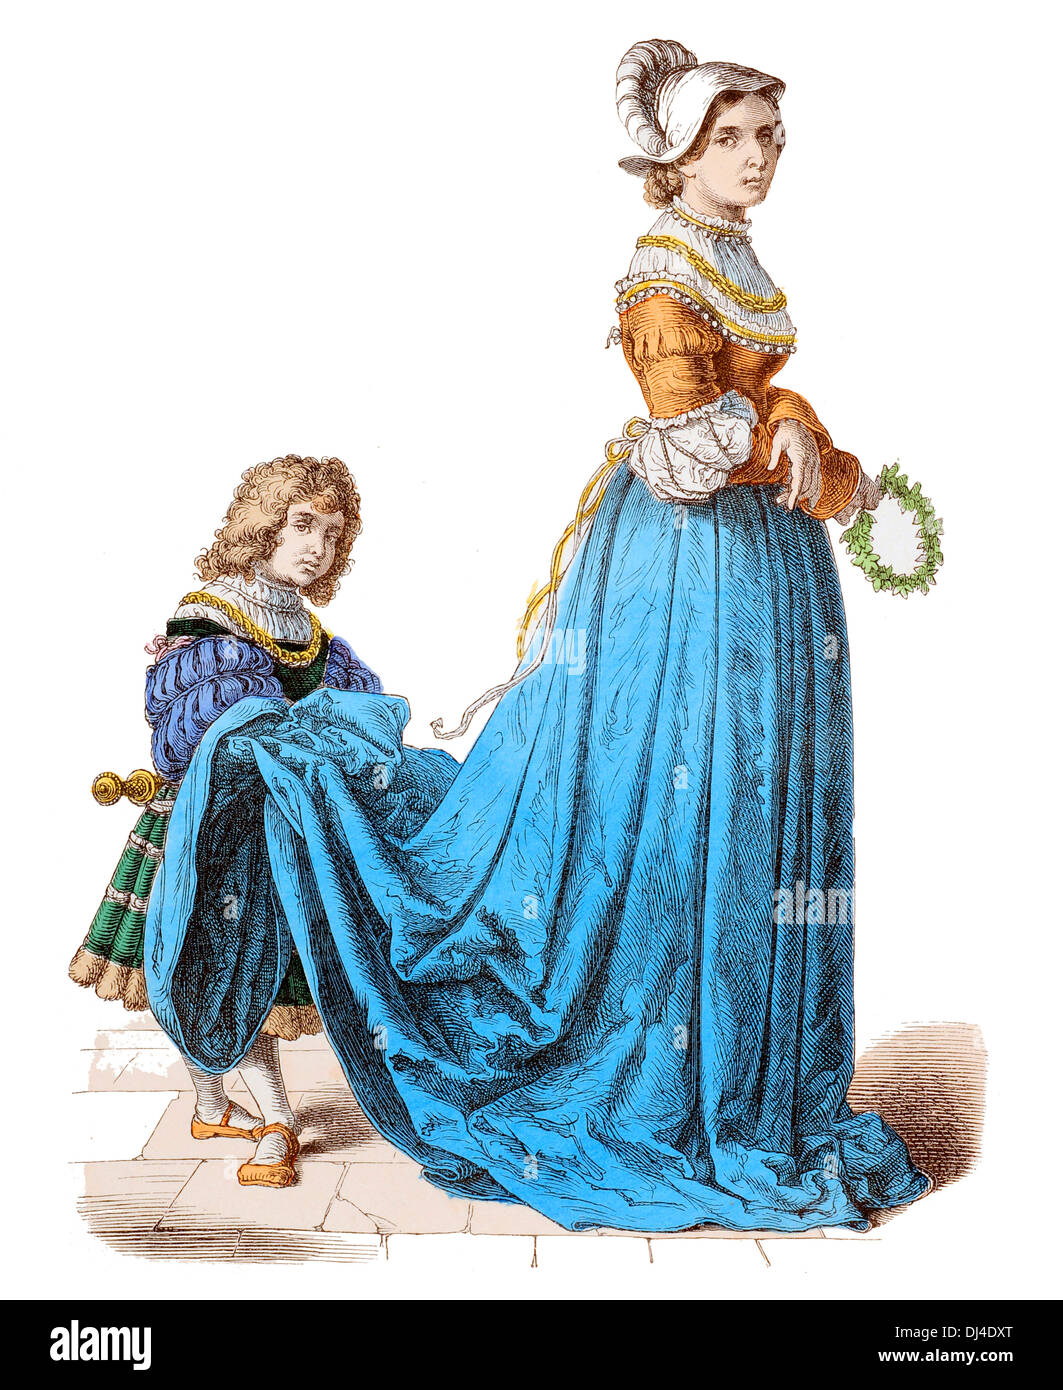 france noble lady and page boy 16th century stock photo royalty